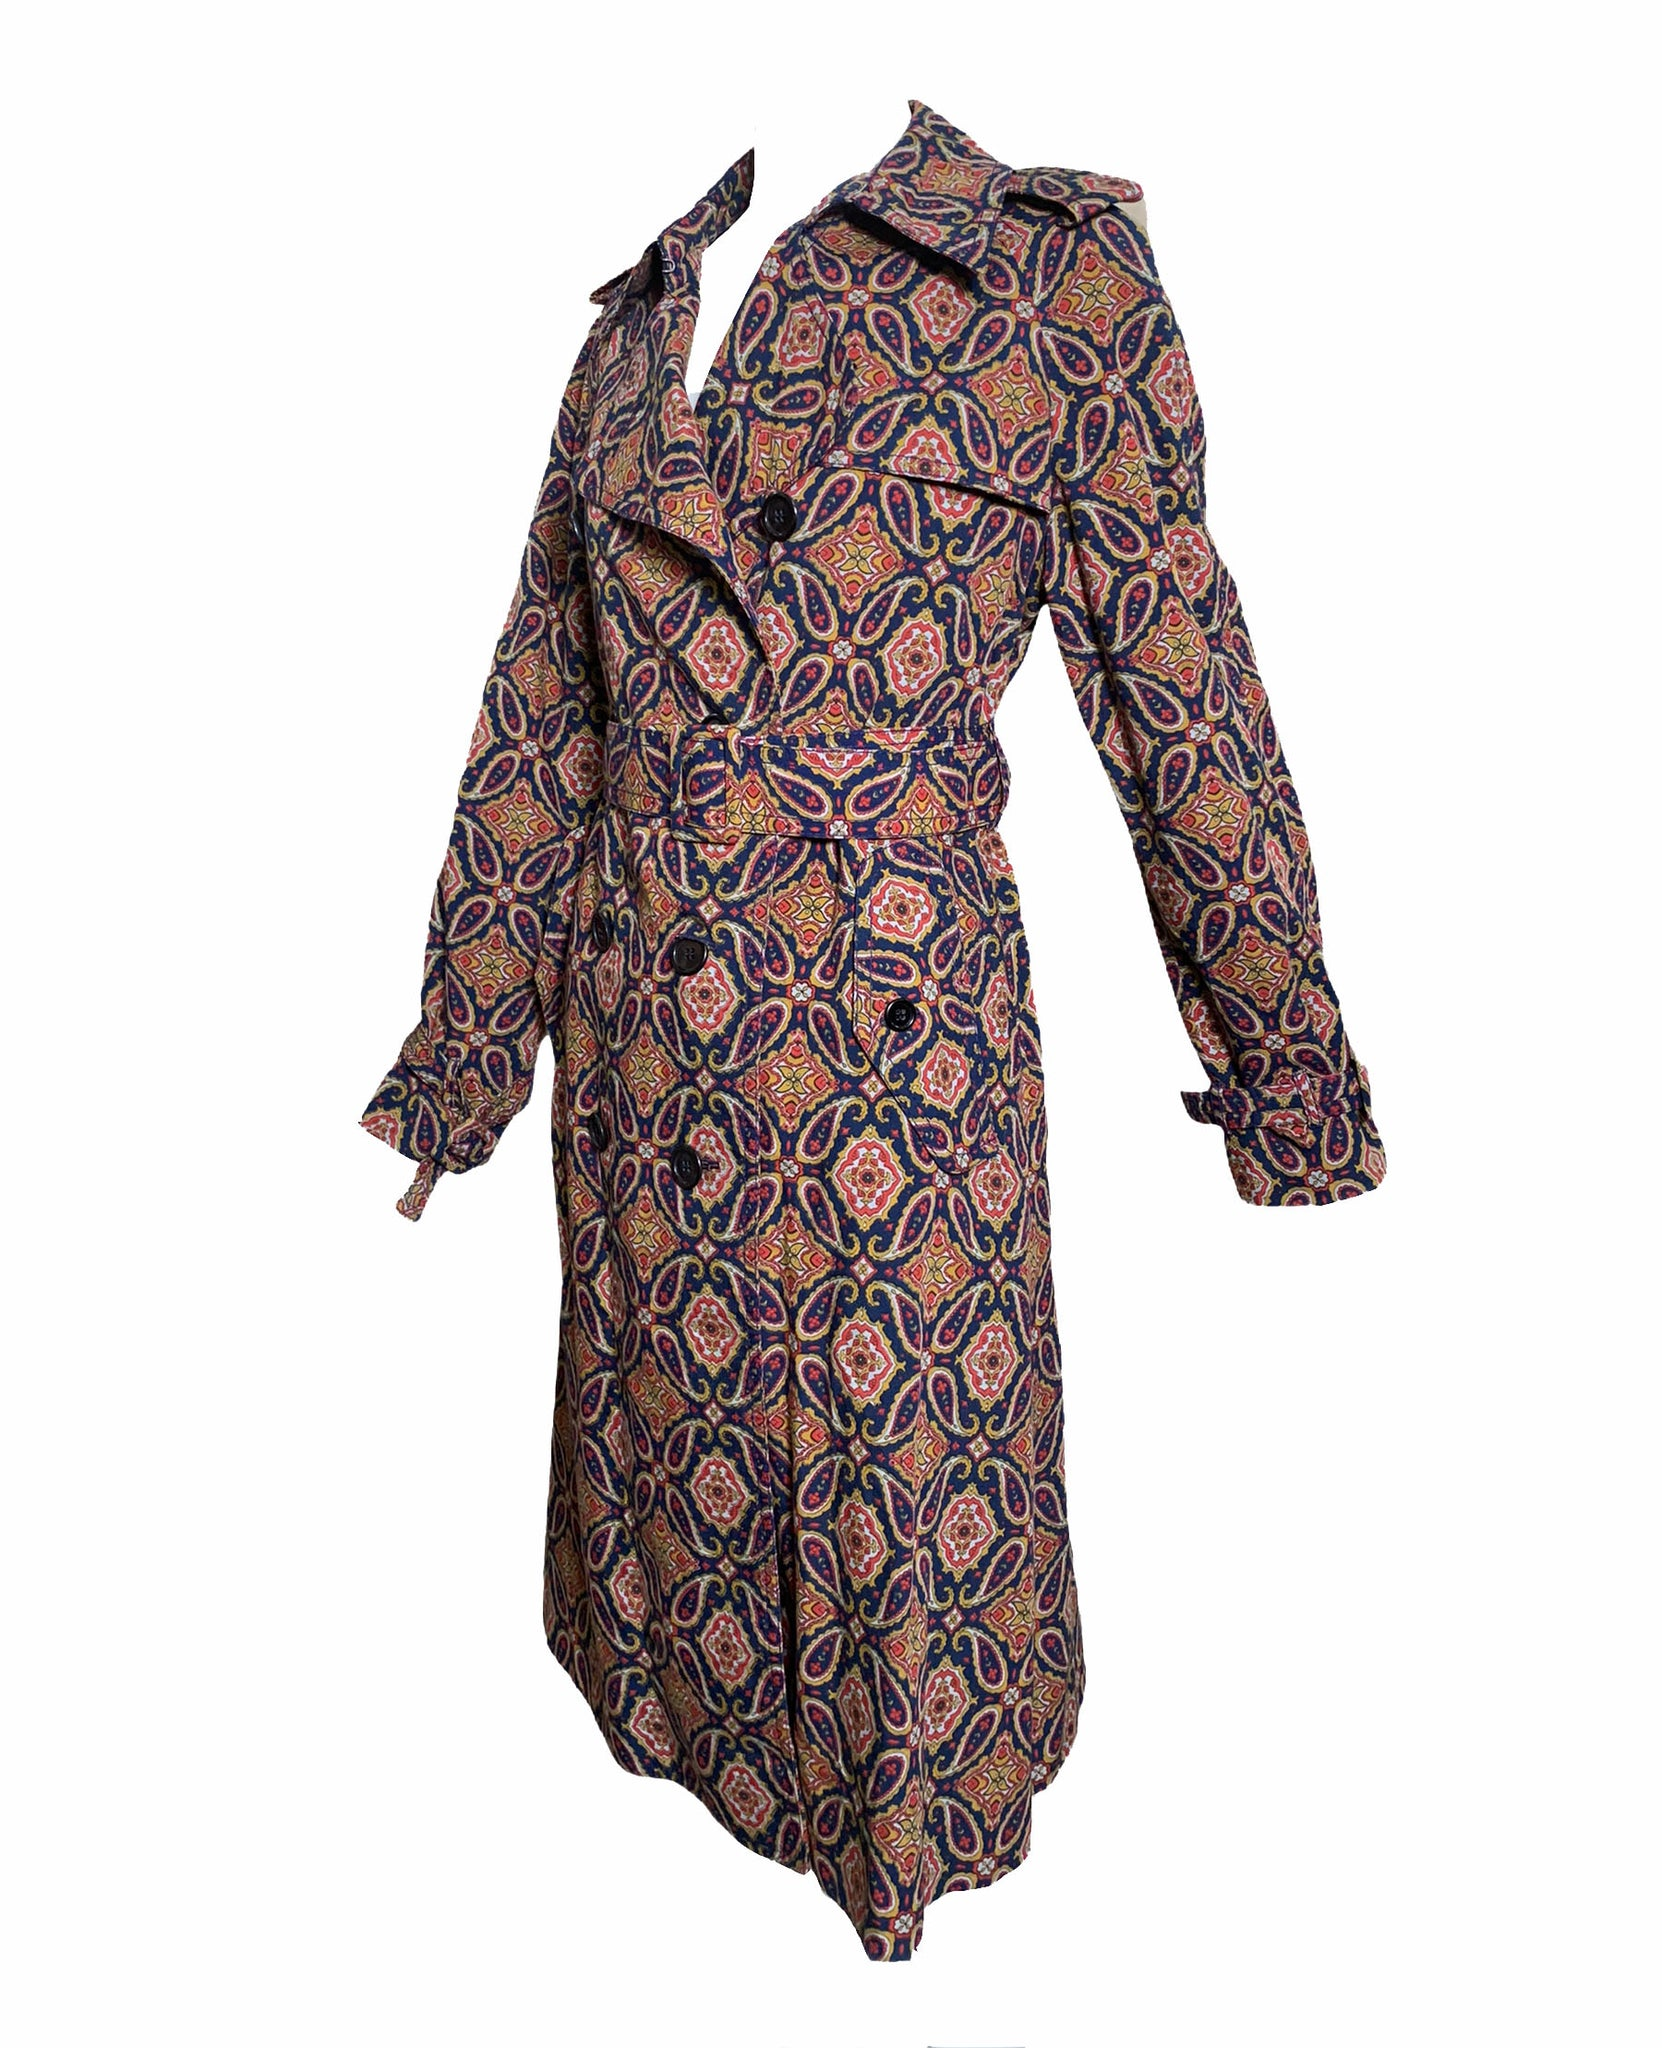 Dorso 70s Paisley Trench Coat SIDE 2 of 5